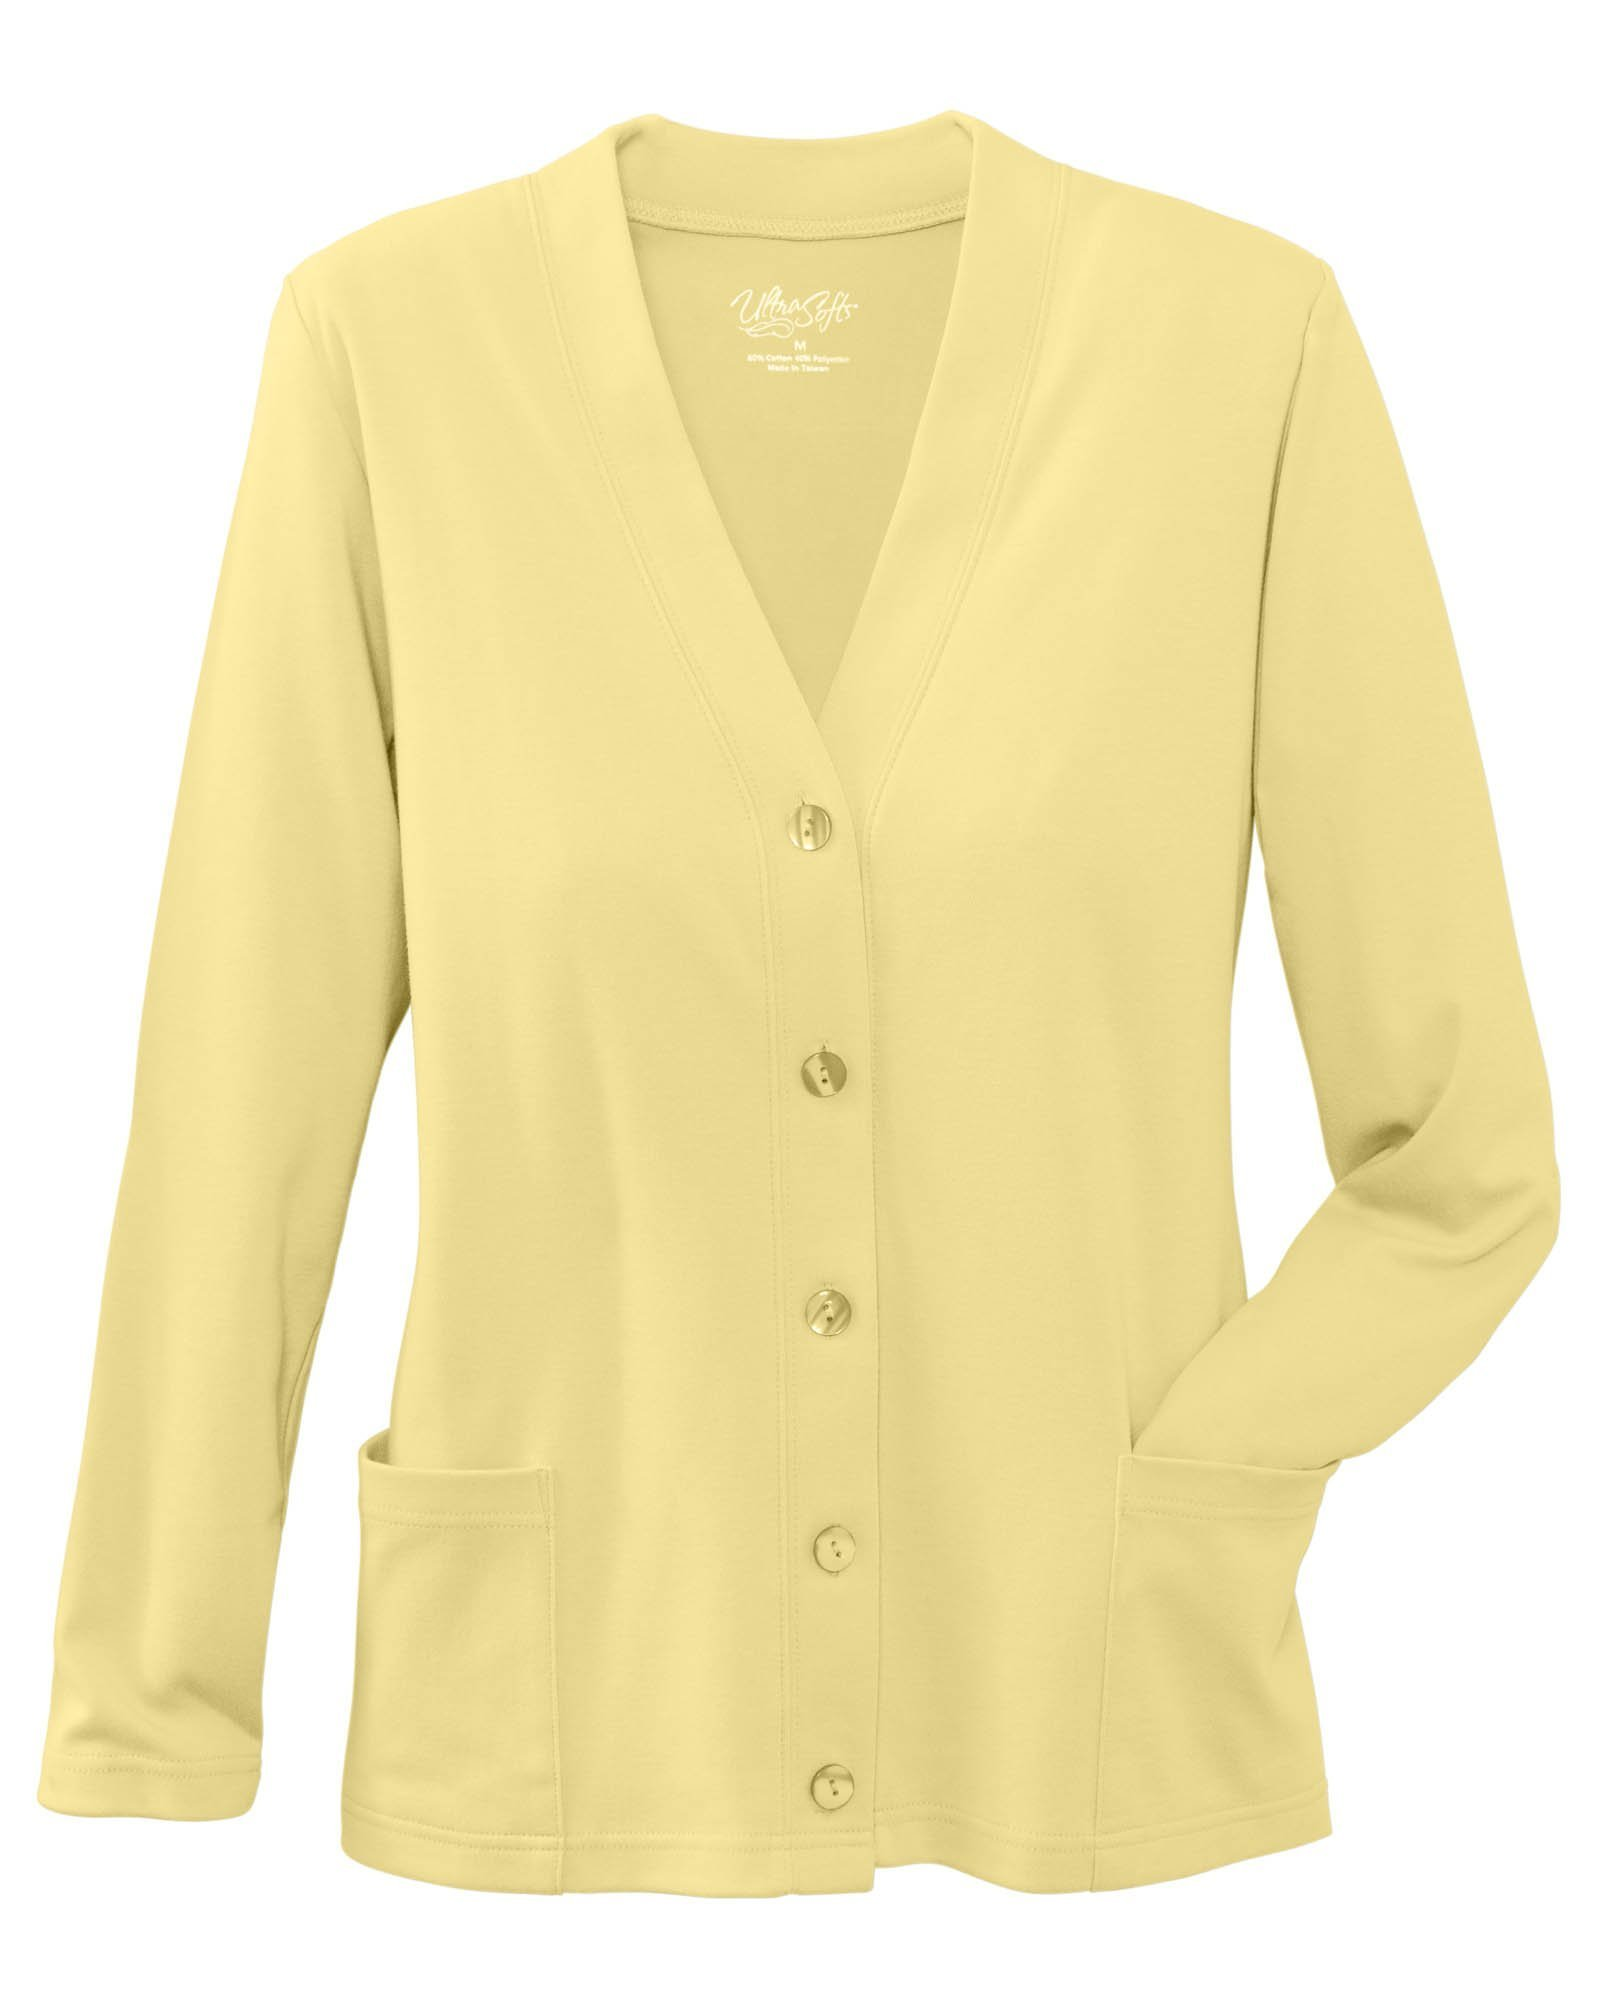 UltraSofts Button-Front Knit Cardigan, Butter, Petite XL